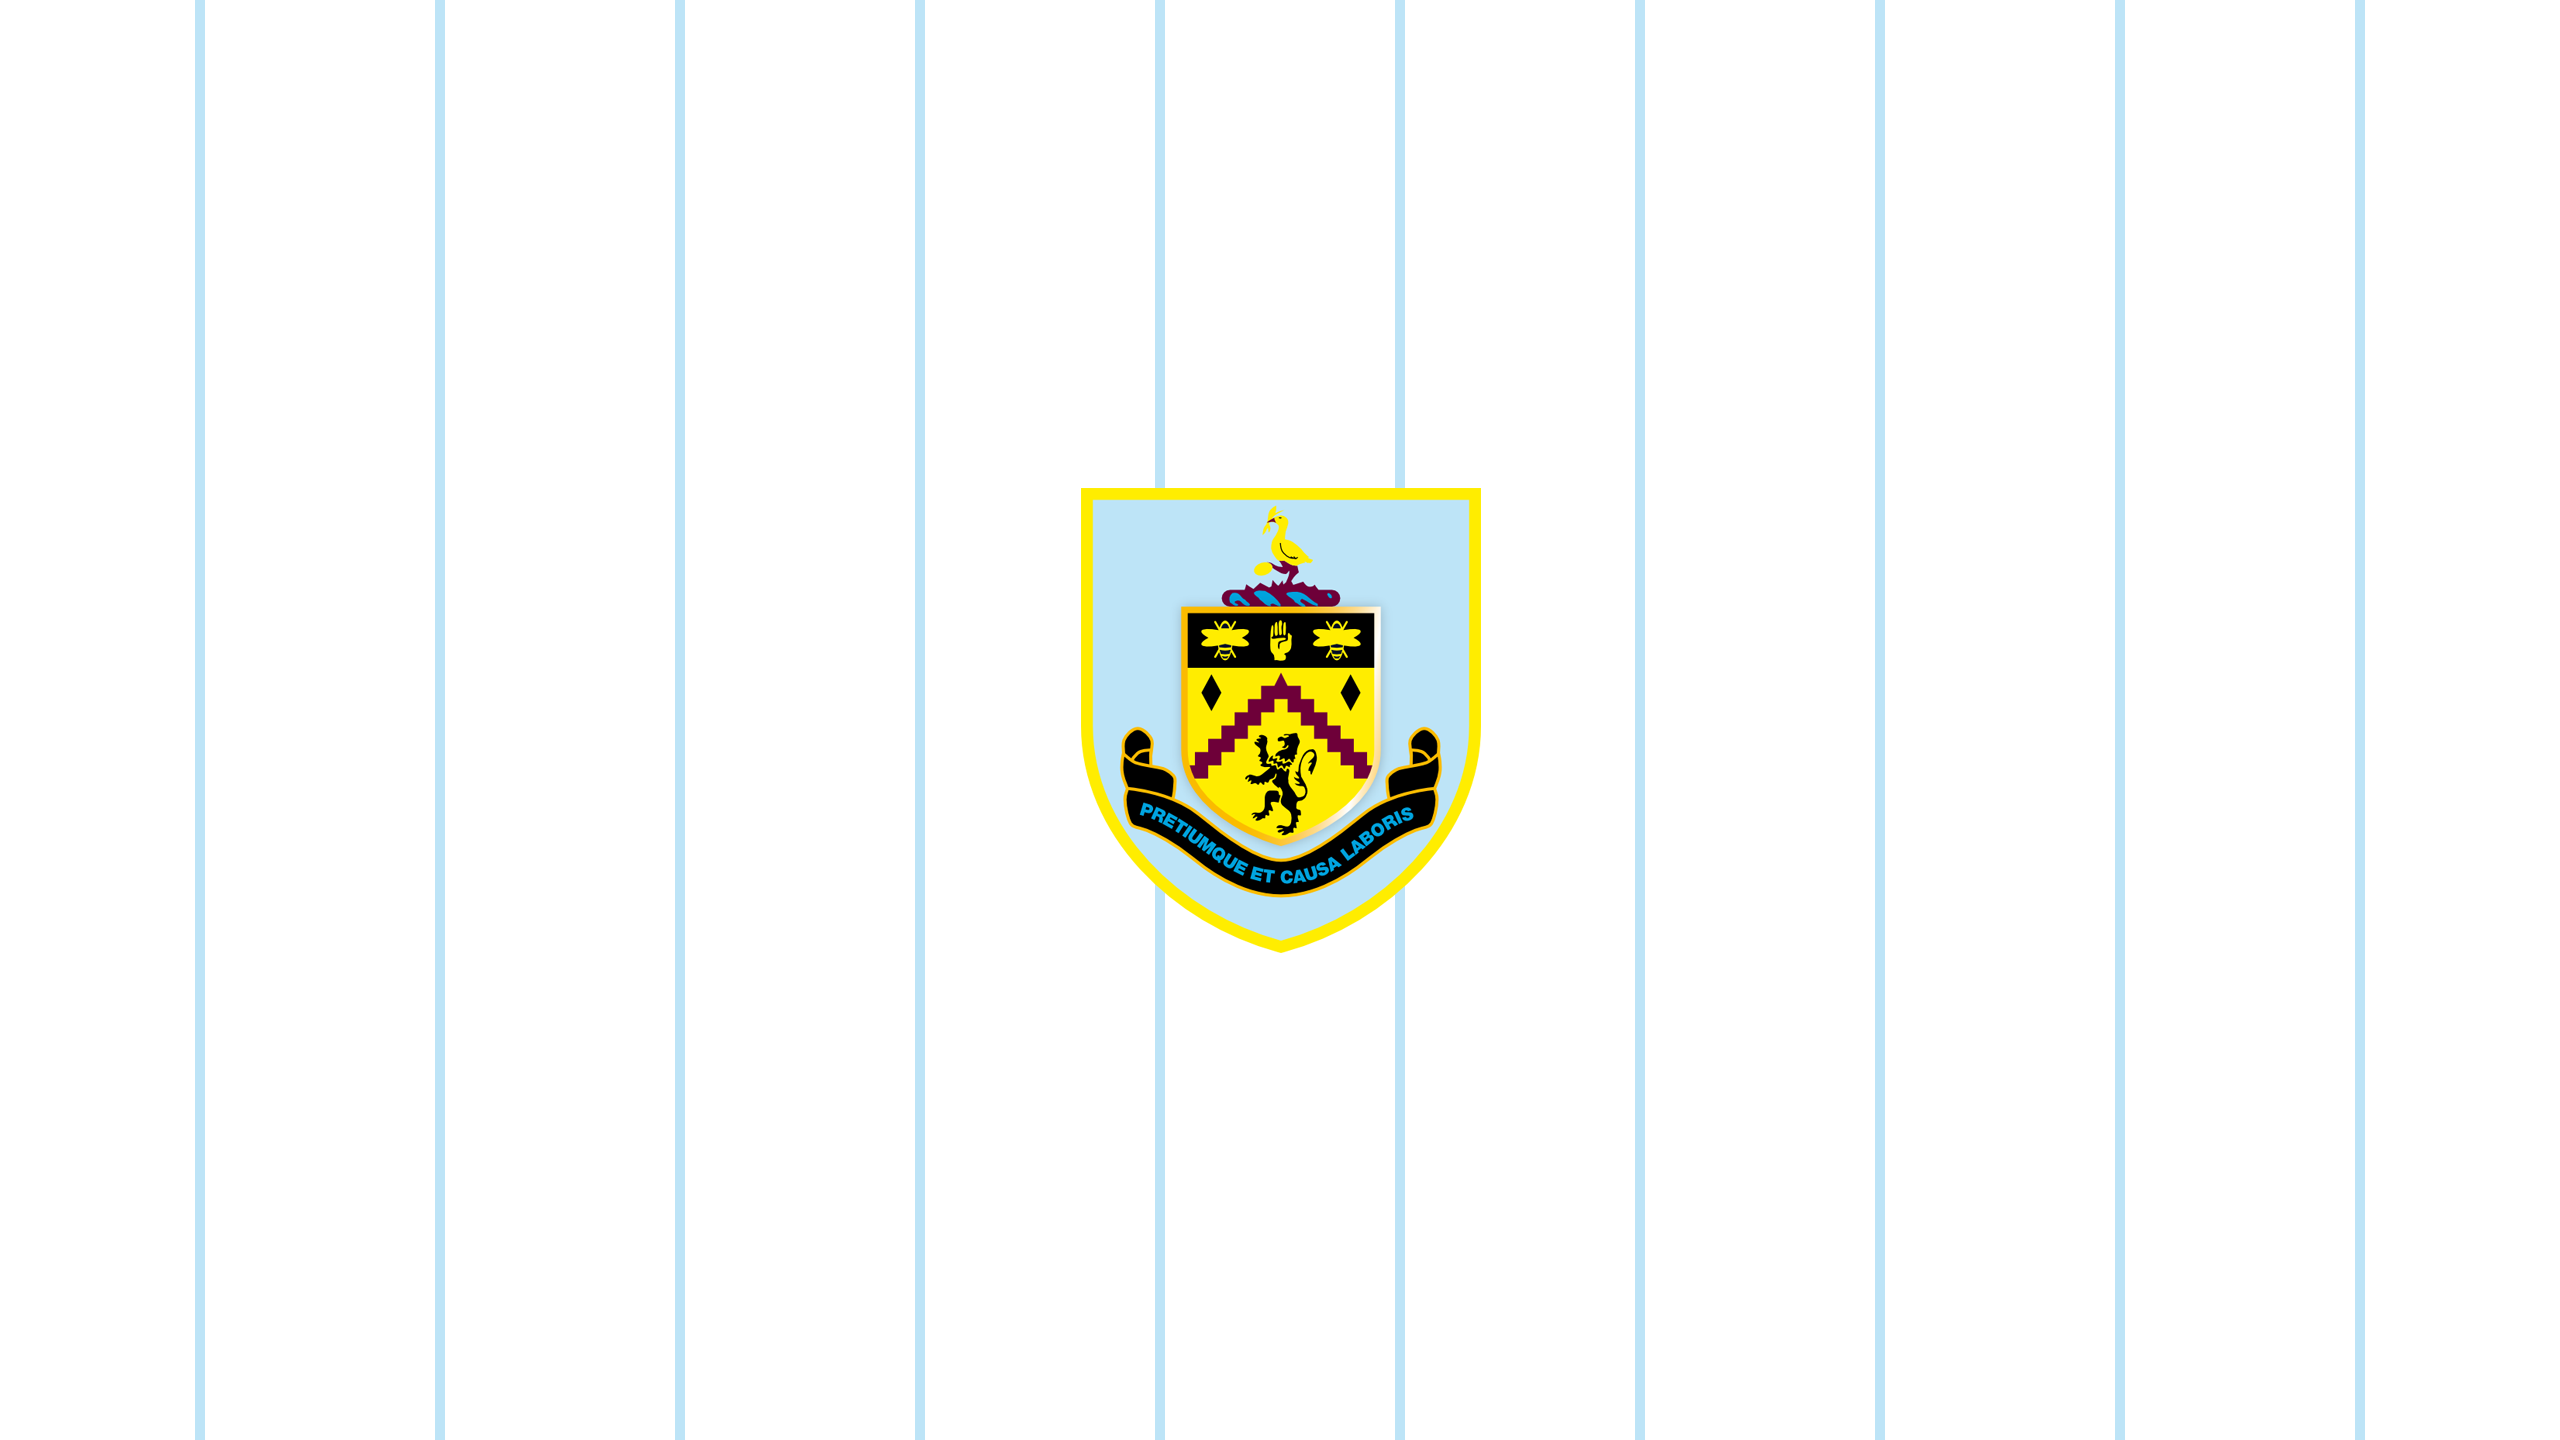 Burnley FC (Away)